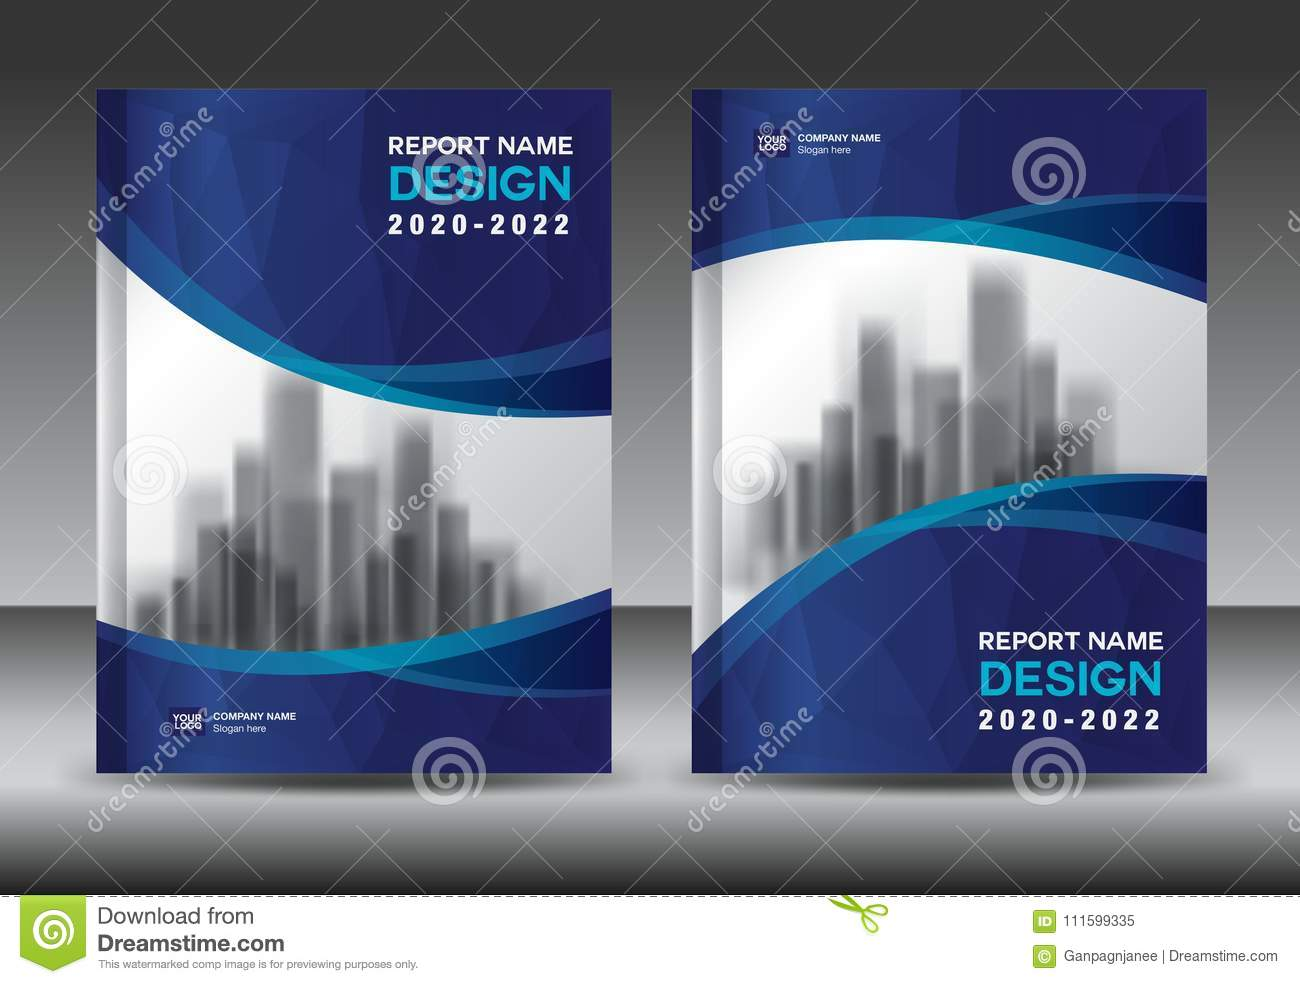 Annual report brochure flyer template, Blue cover design, business advertisement, magazine ads, book cover